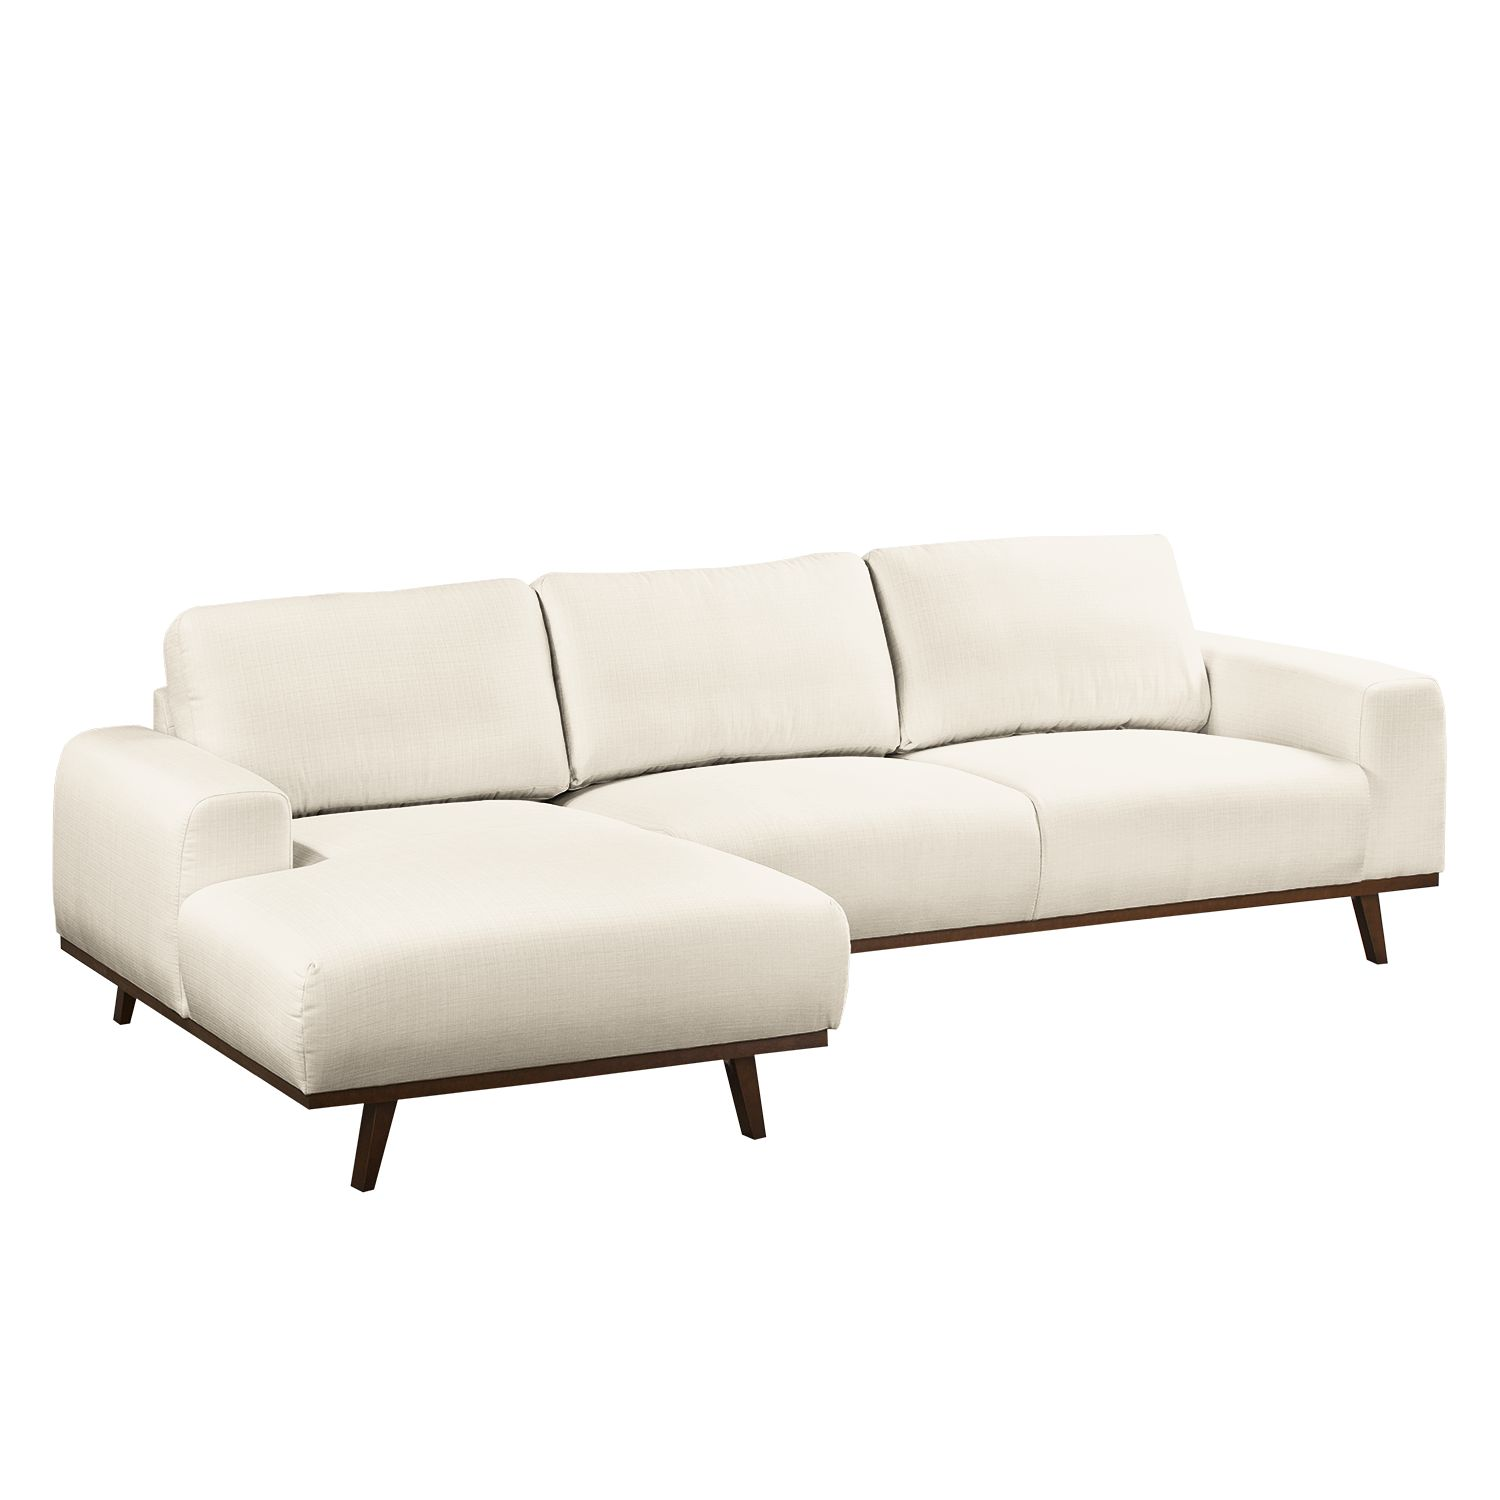 Ecksofa Lauris